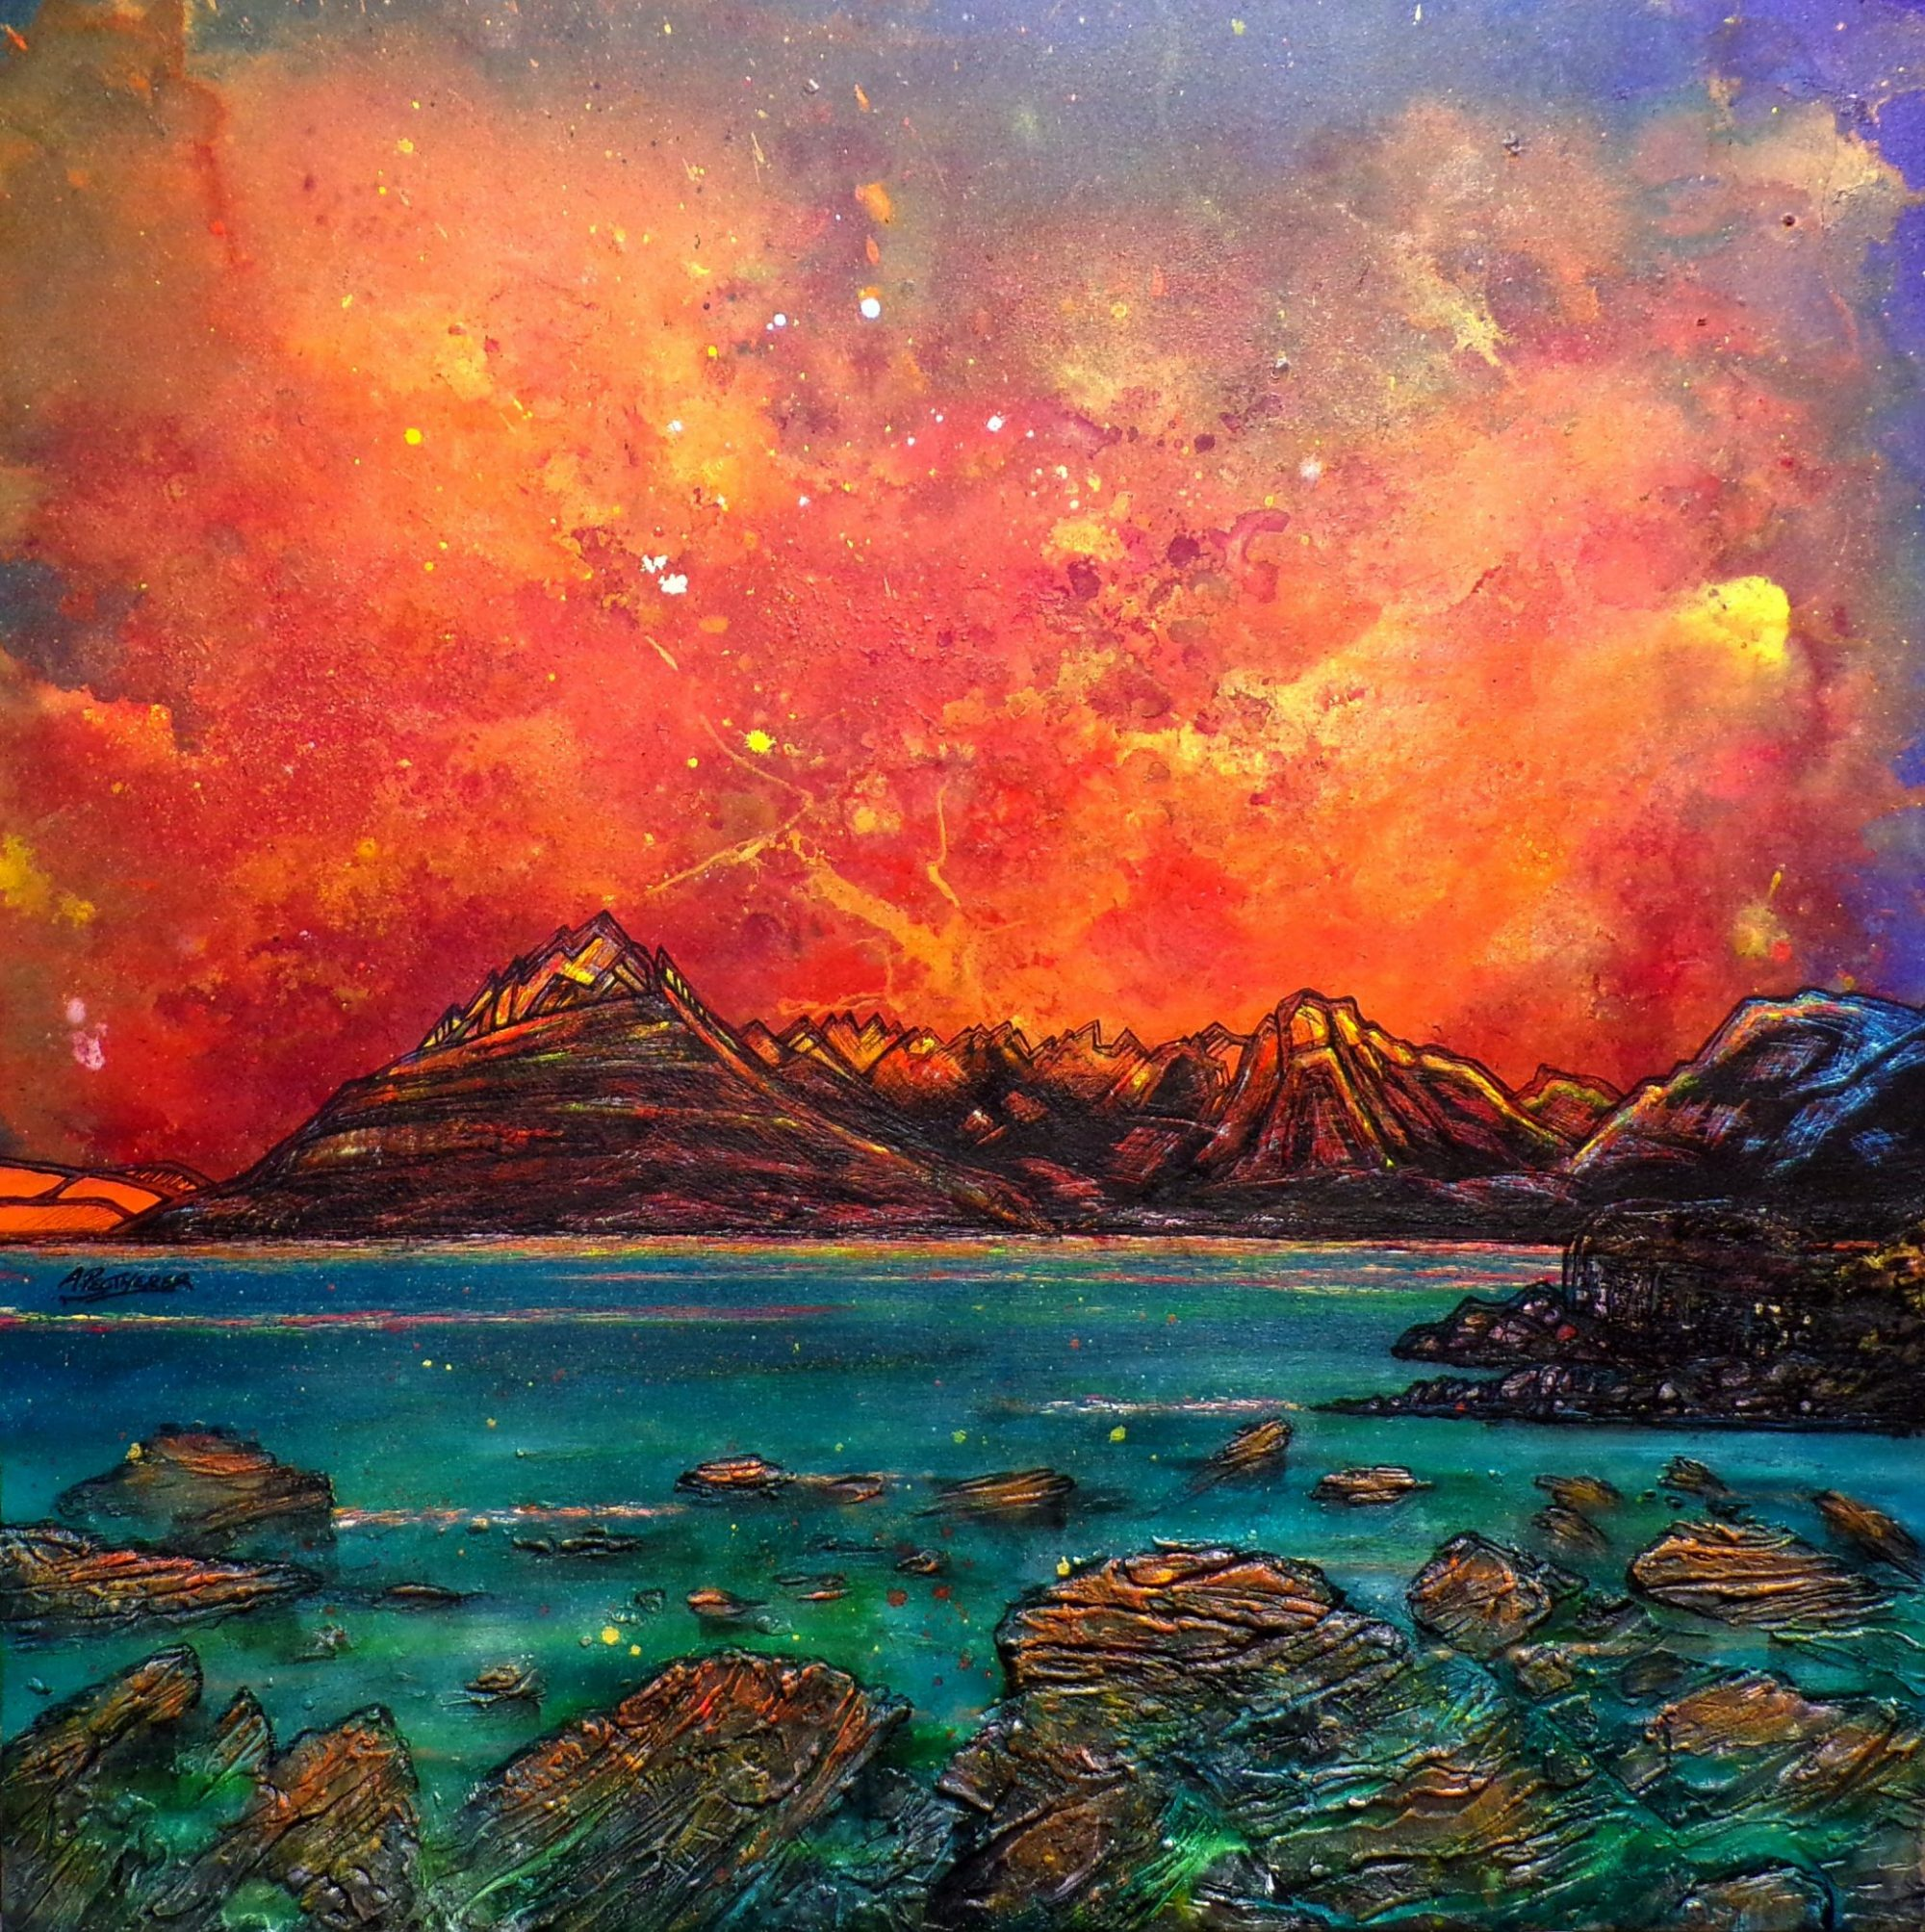 Skye, The Cuillin from Elgol - Canvas painting and prints by A Peutherer